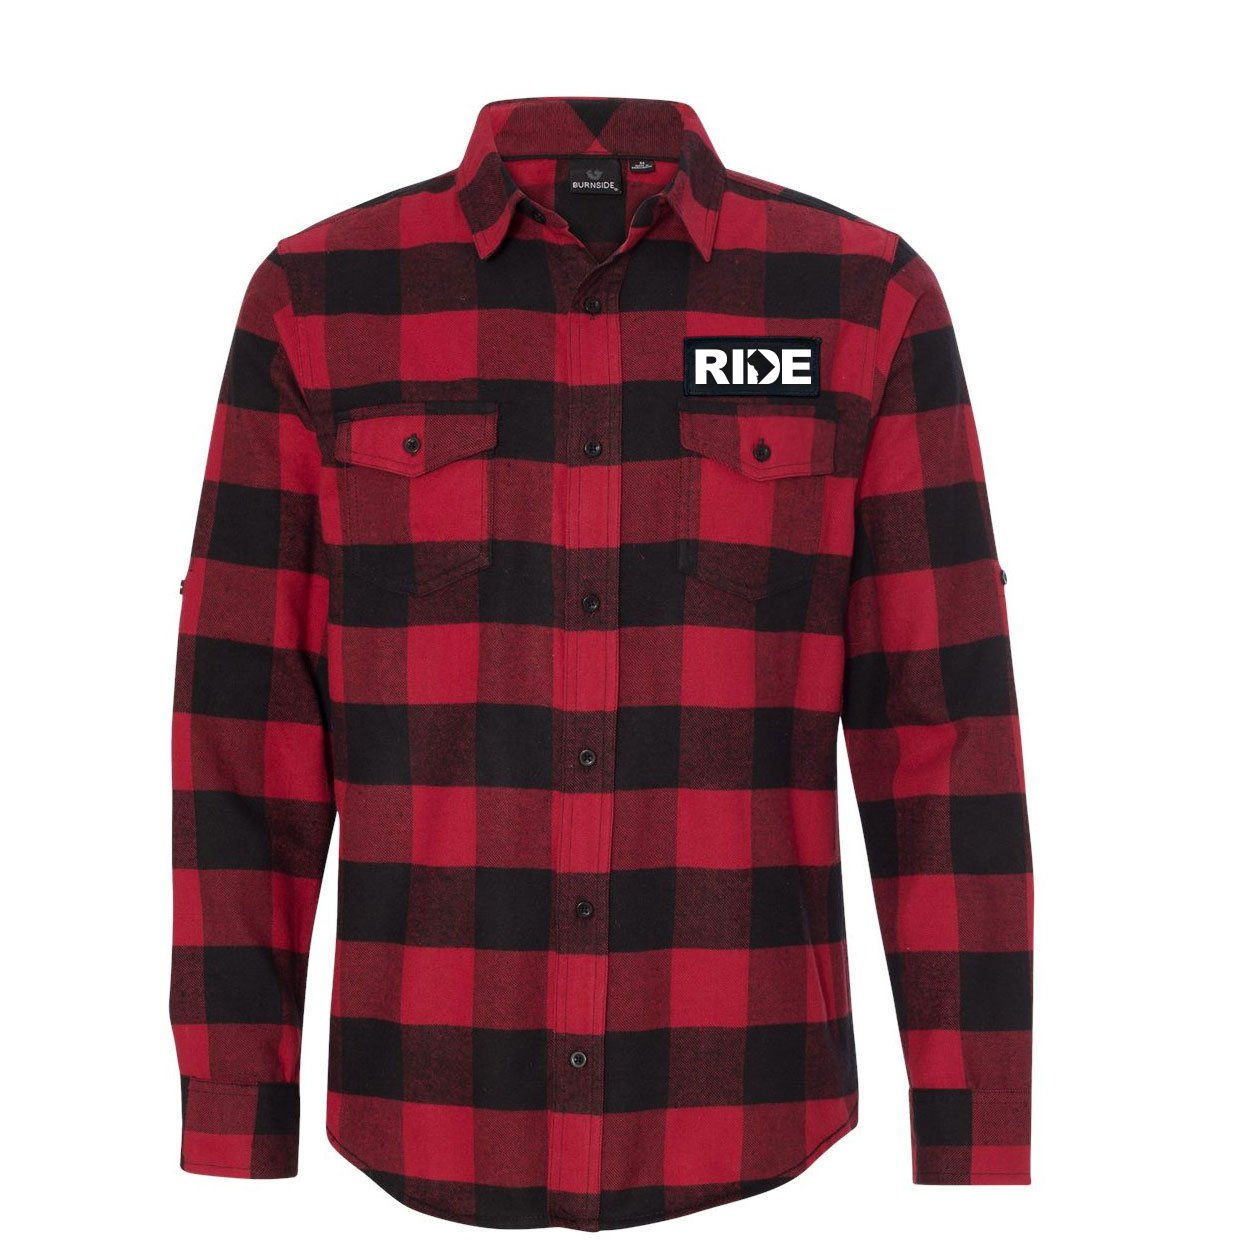 Ride District of Columbia Classic Unisex Long Sleeve Woven Patch Flannel Shirt Red/Black Buffalo (White Logo)